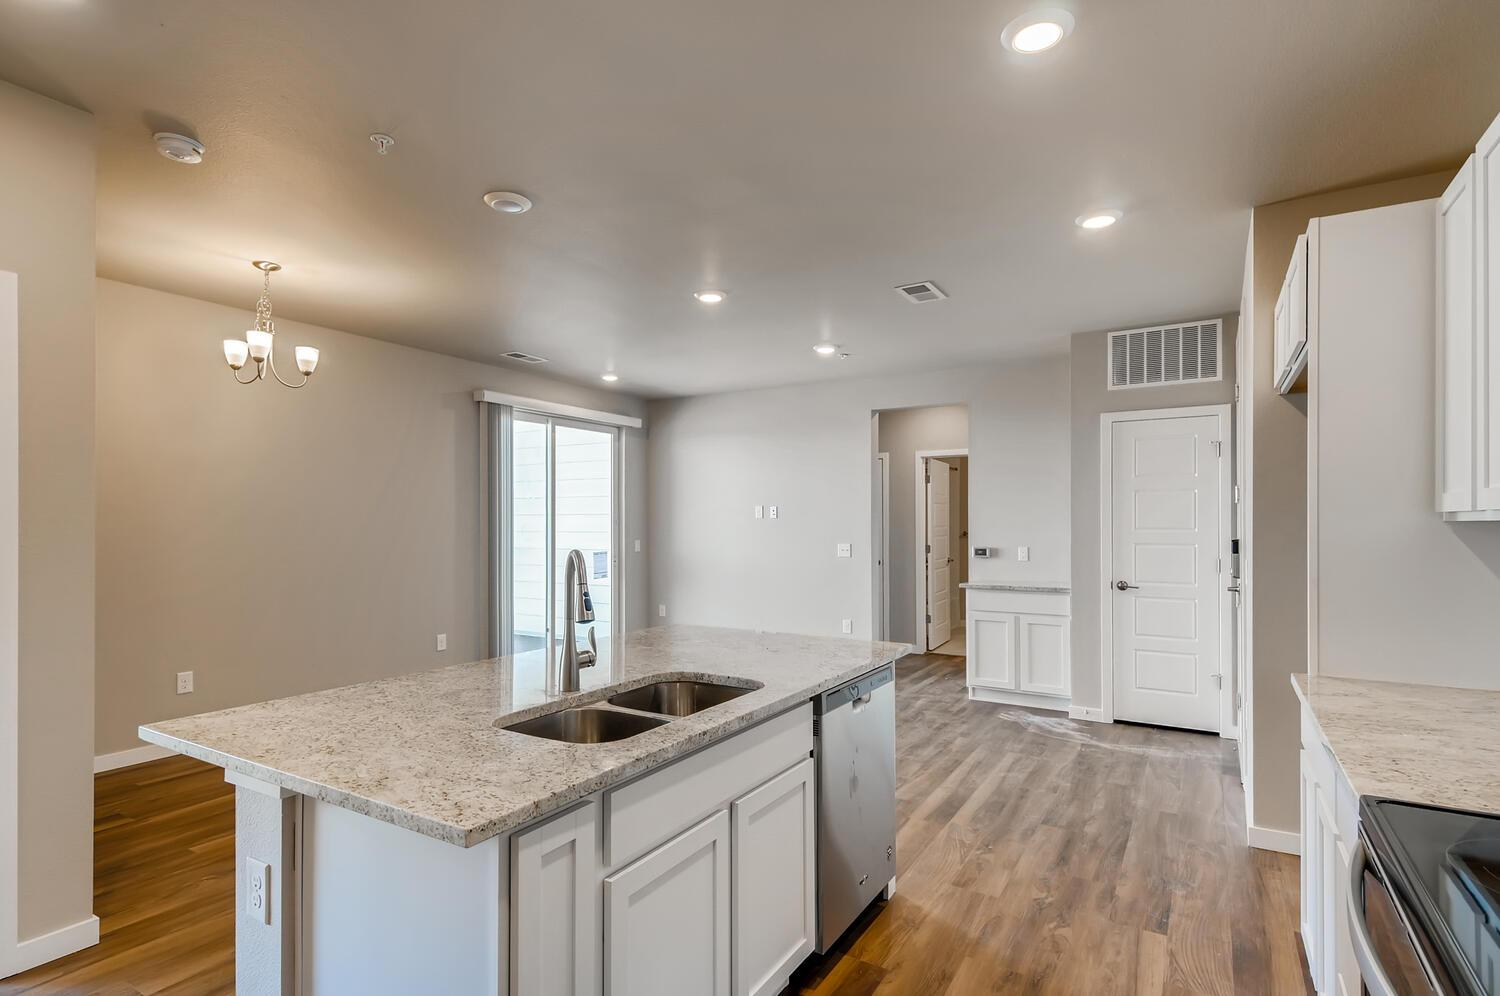 Kitchen featured in the 2A By Century Communities in Denver, CO